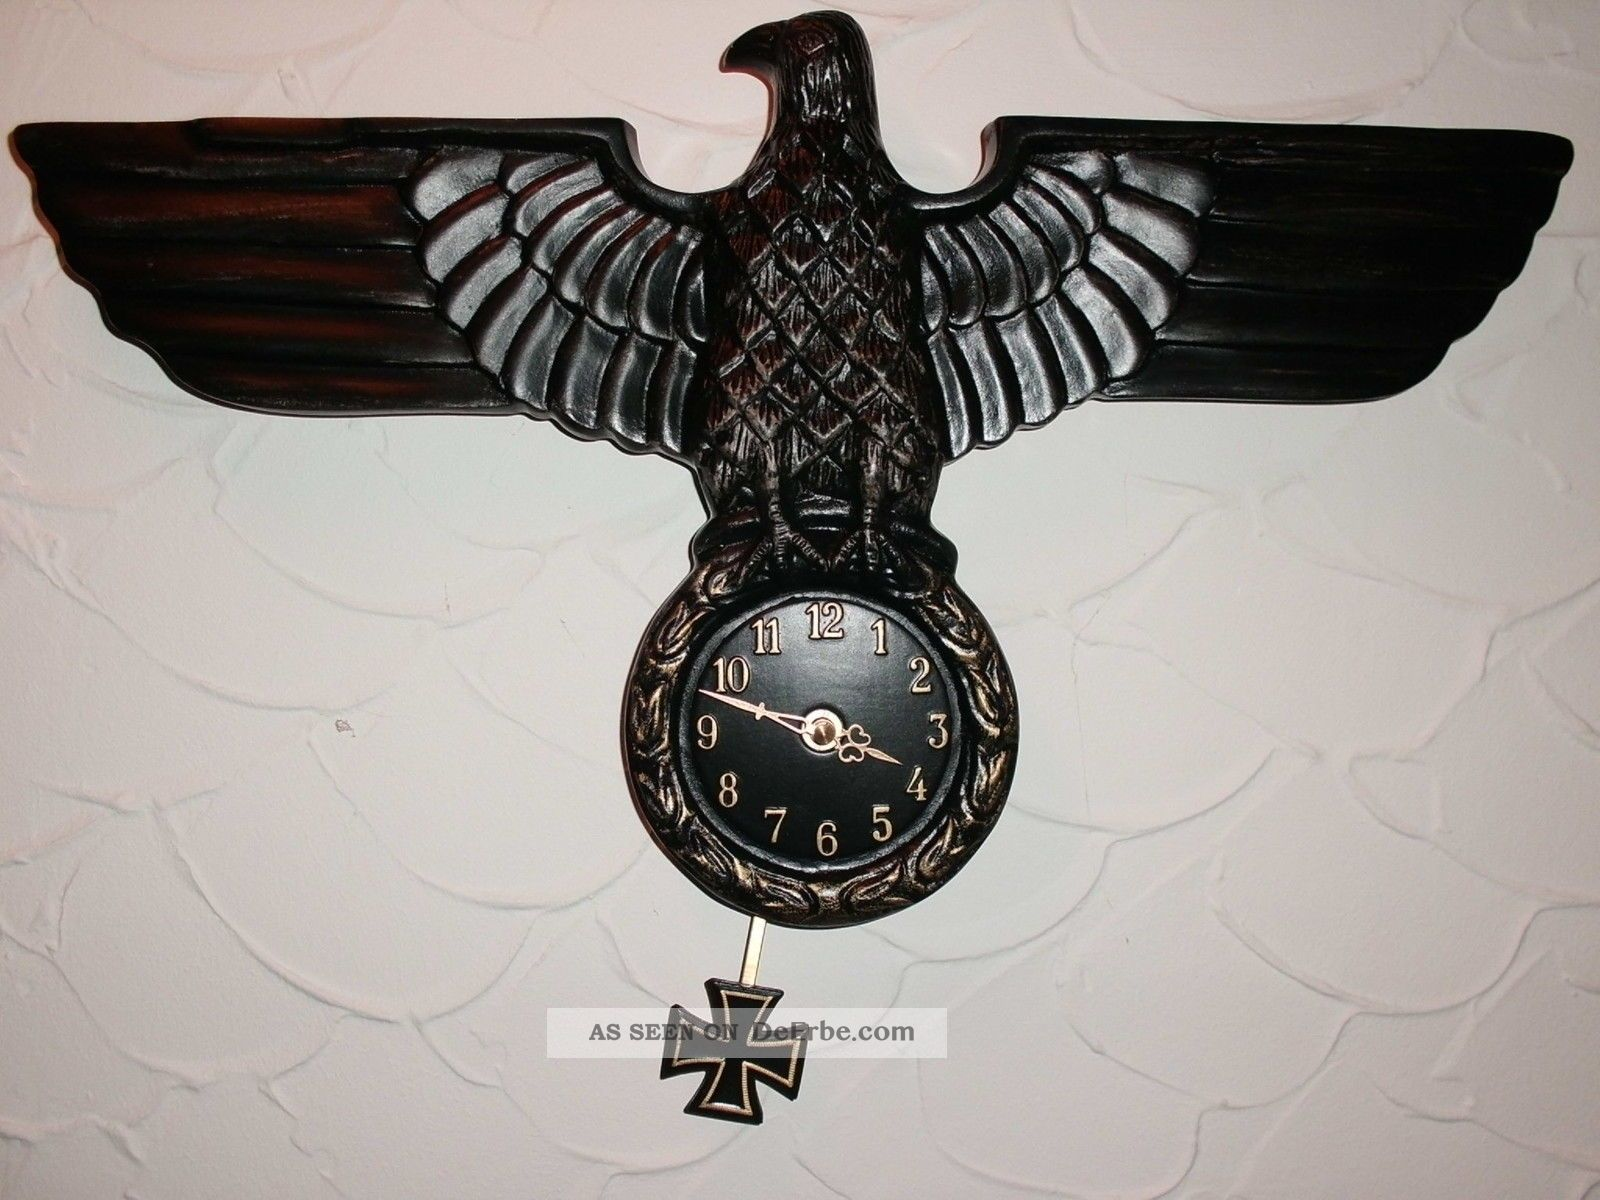 adler wanduhr design deko antik reichsadler 1944 lorbeerkranz military pendeluhr. Black Bedroom Furniture Sets. Home Design Ideas